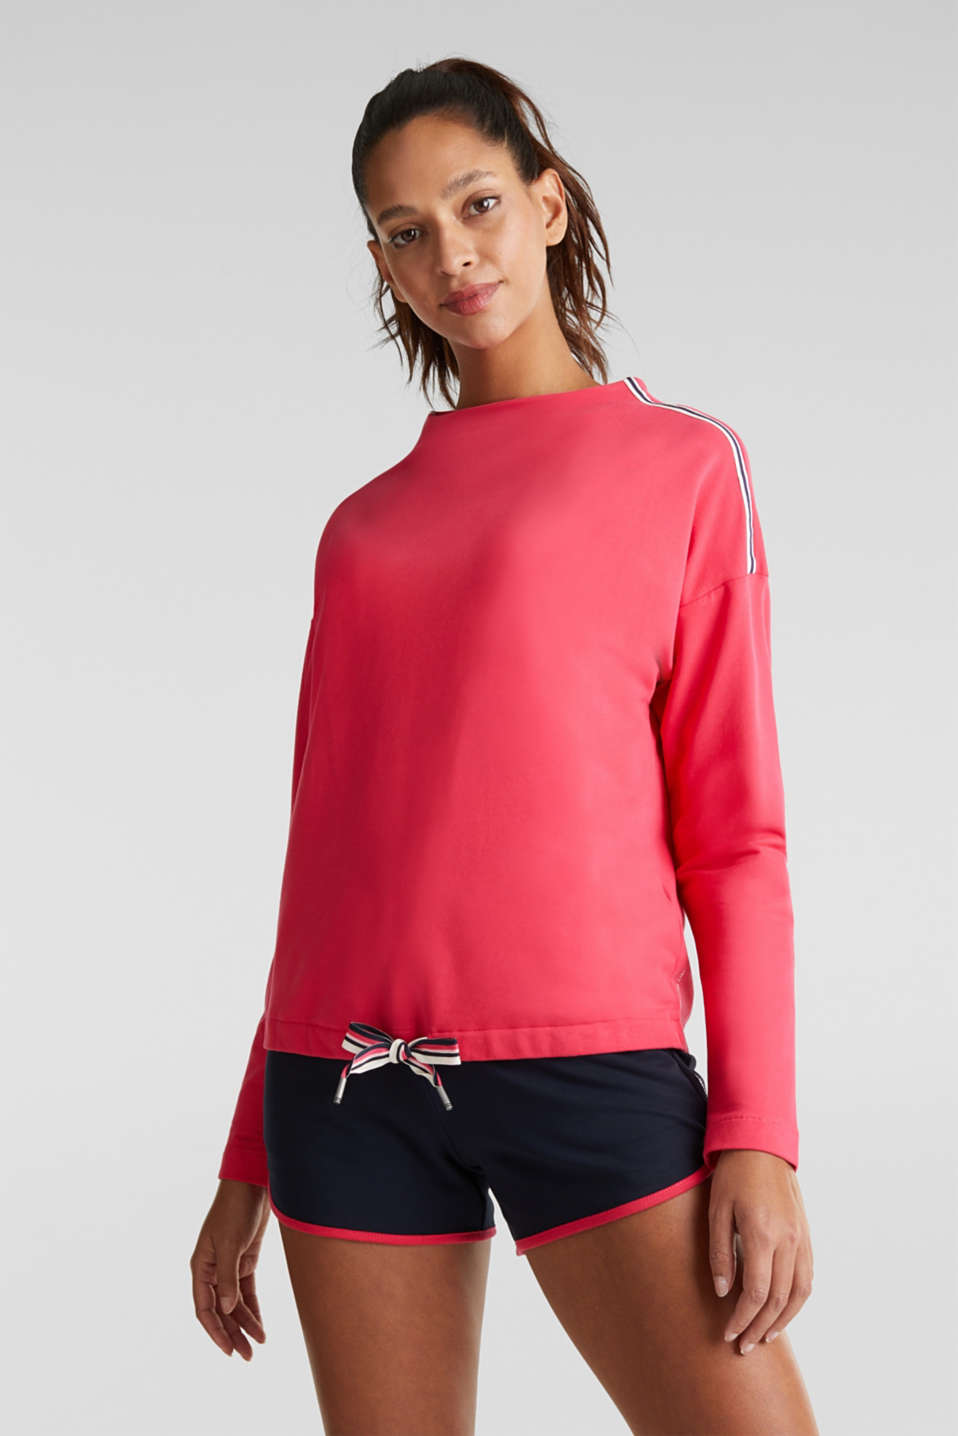 Stretch sweatshirt with a stand-up collar and stripes, BERRY RED, detail image number 0